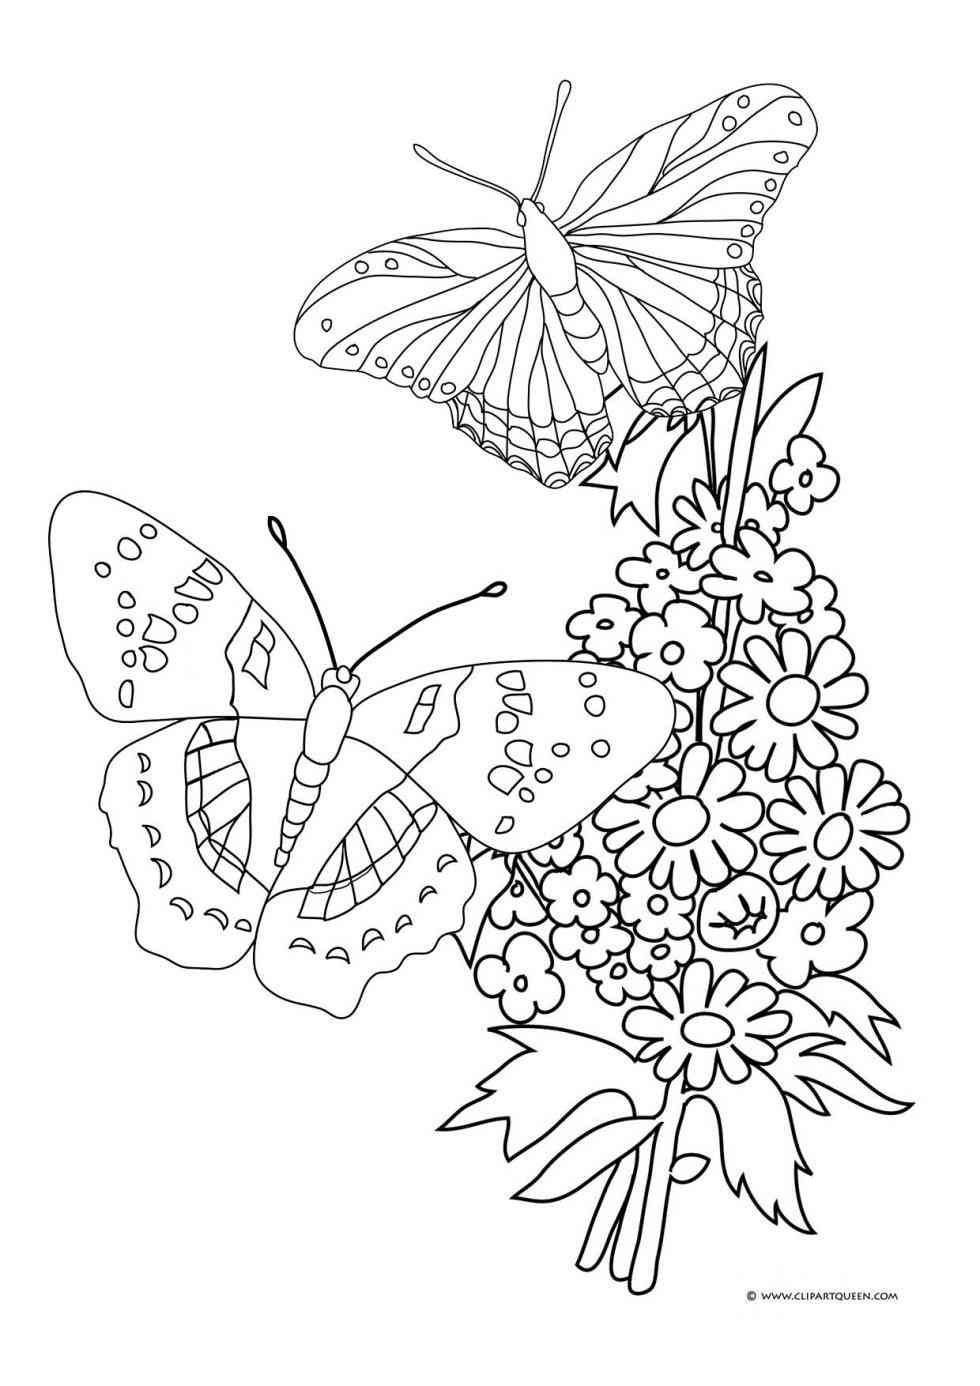 980x1386 Bush Drawing Bush Drawing Easy Ua Copayonline Best To Draw Flowers